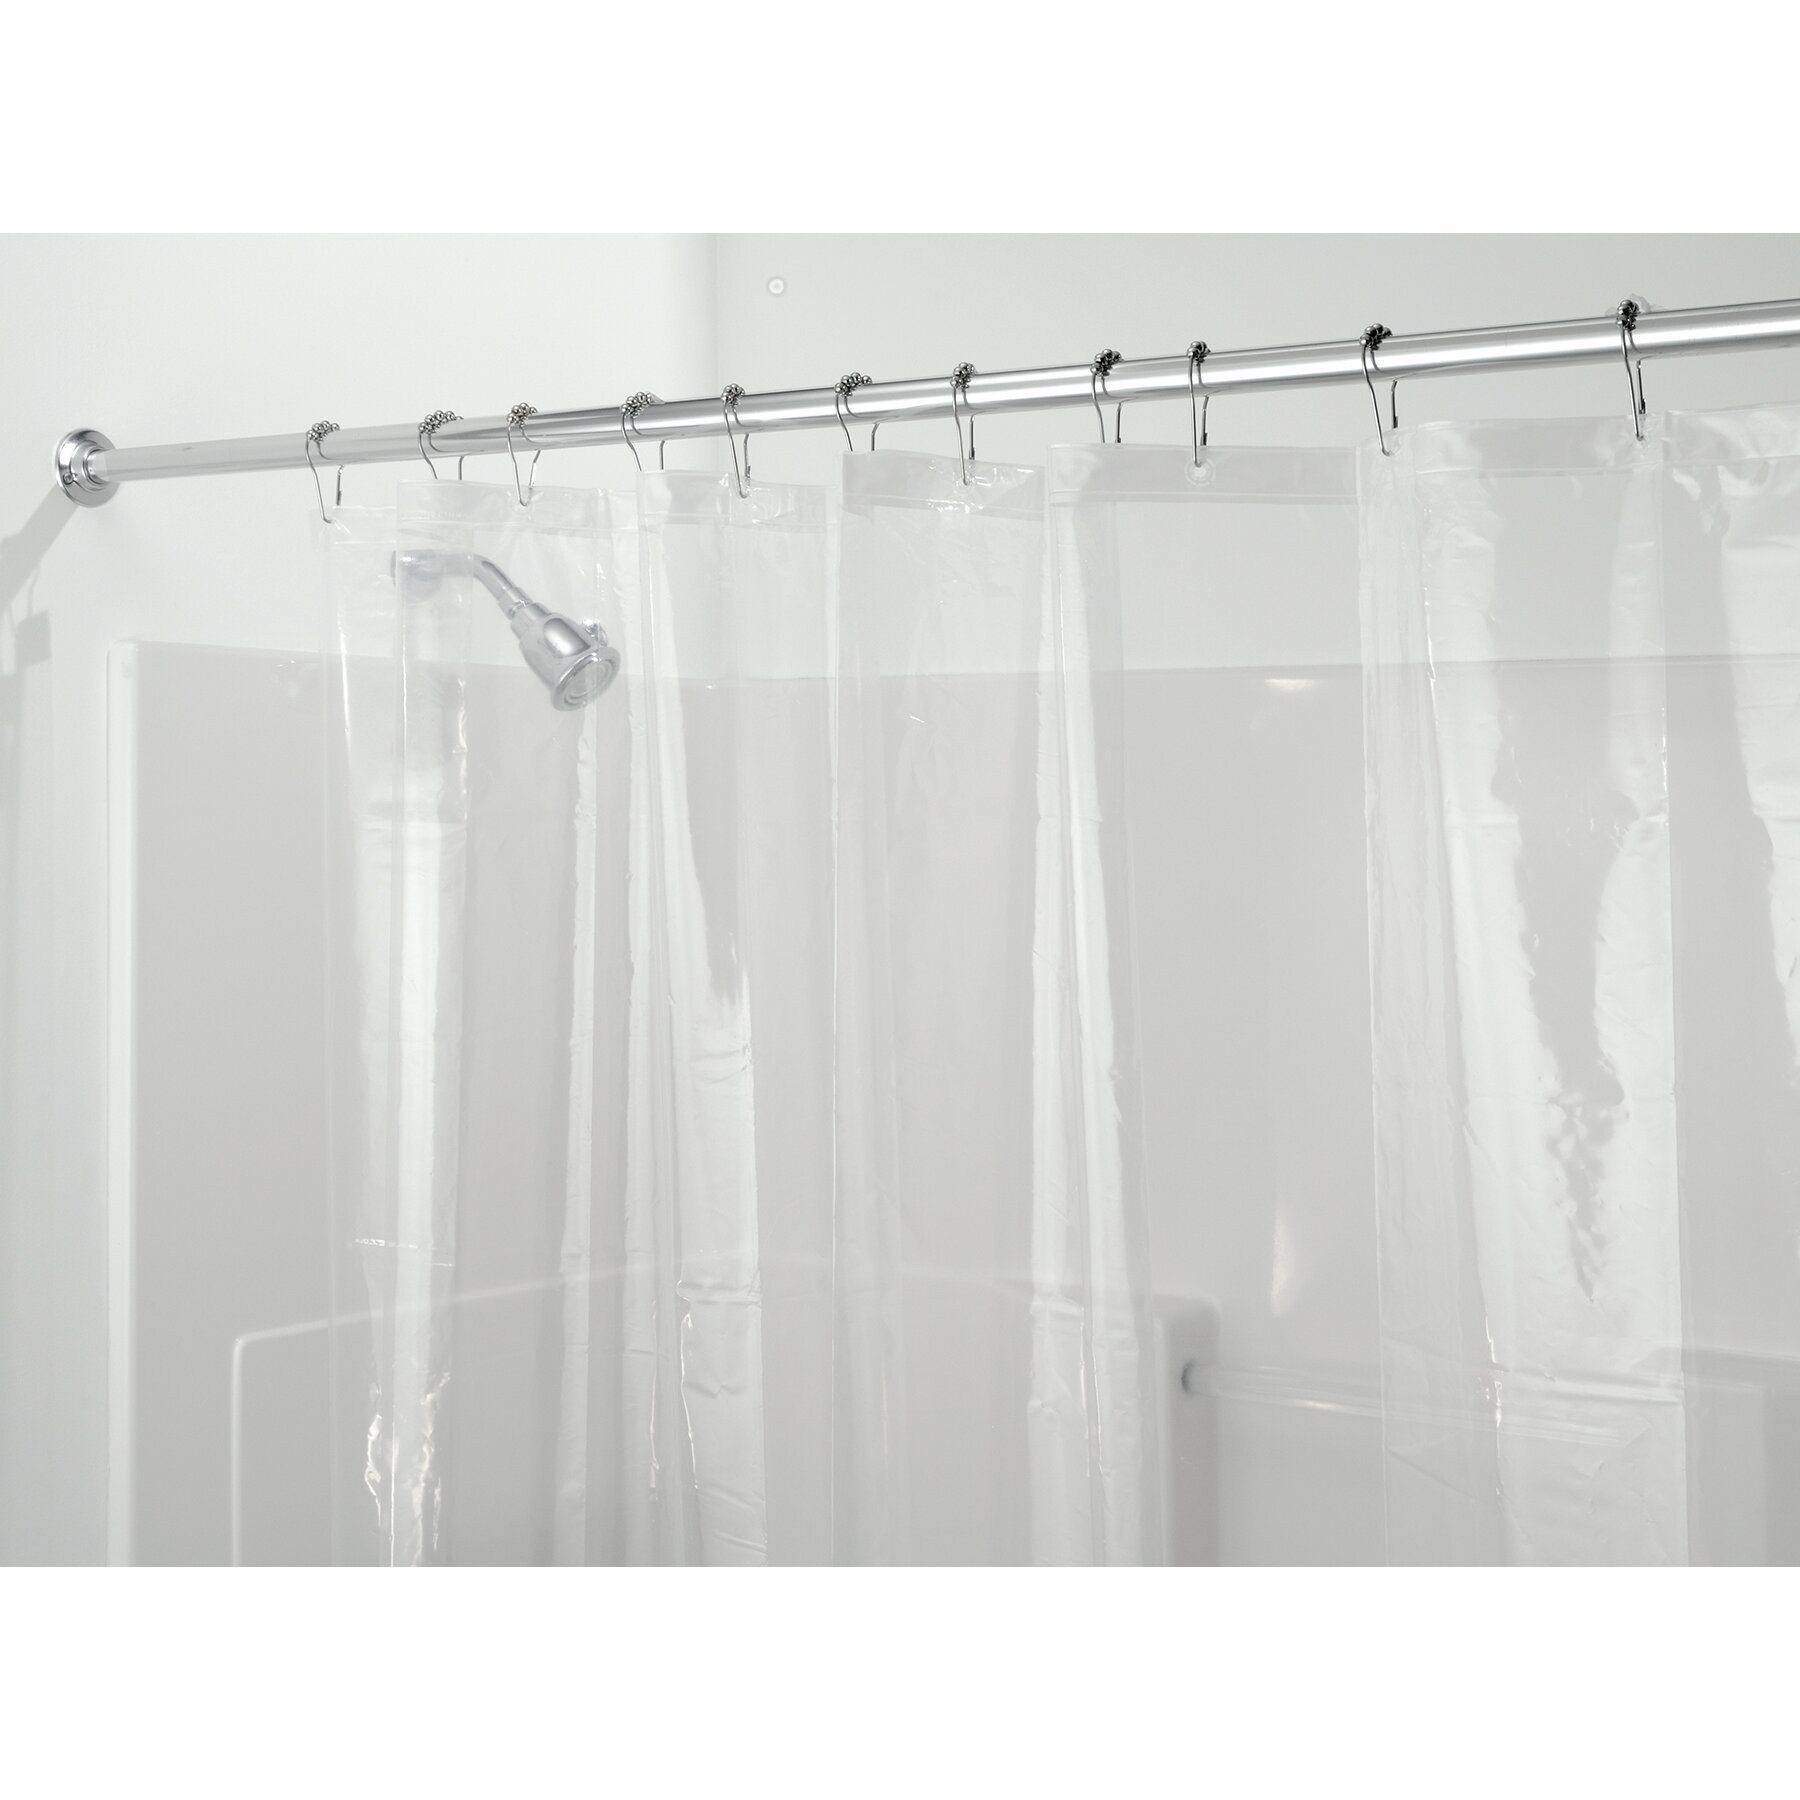 Symple Stuff Peva Stall Shower Curtain Liner Reviews Wayfair